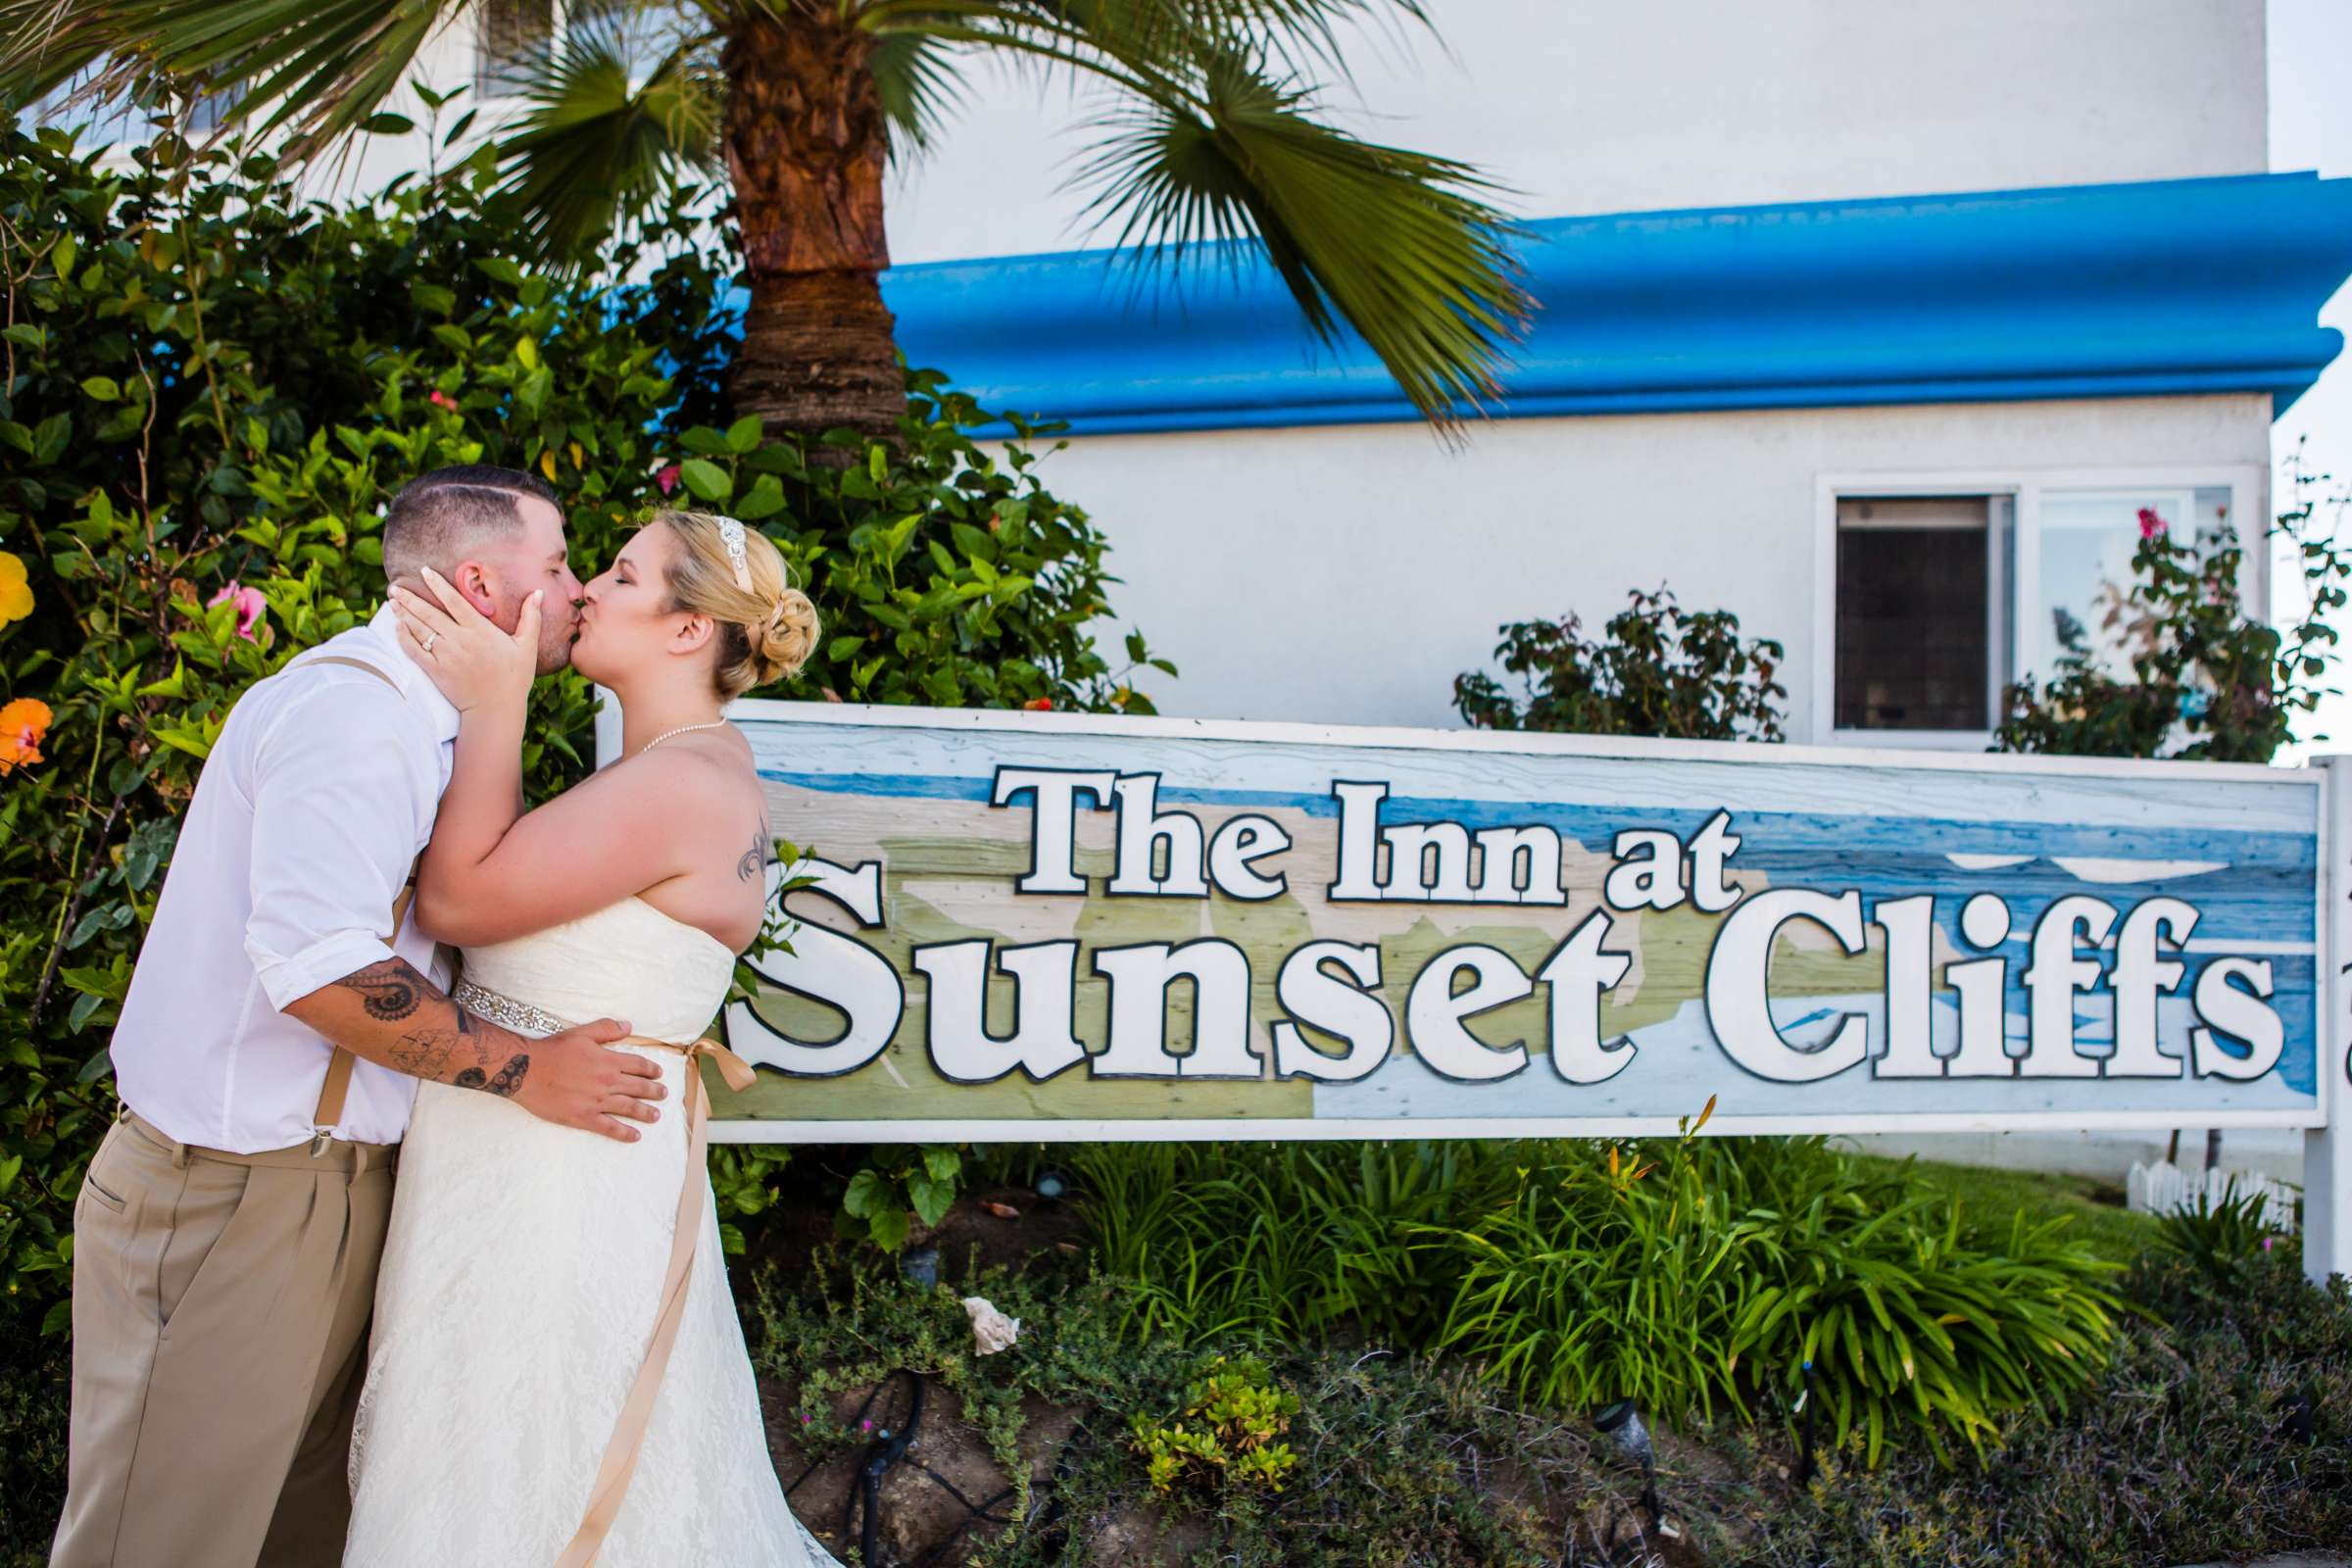 The Inn at Sunset Cliffs Wedding, Melinda and Benjamin Wedding Photo #81 by True Photography